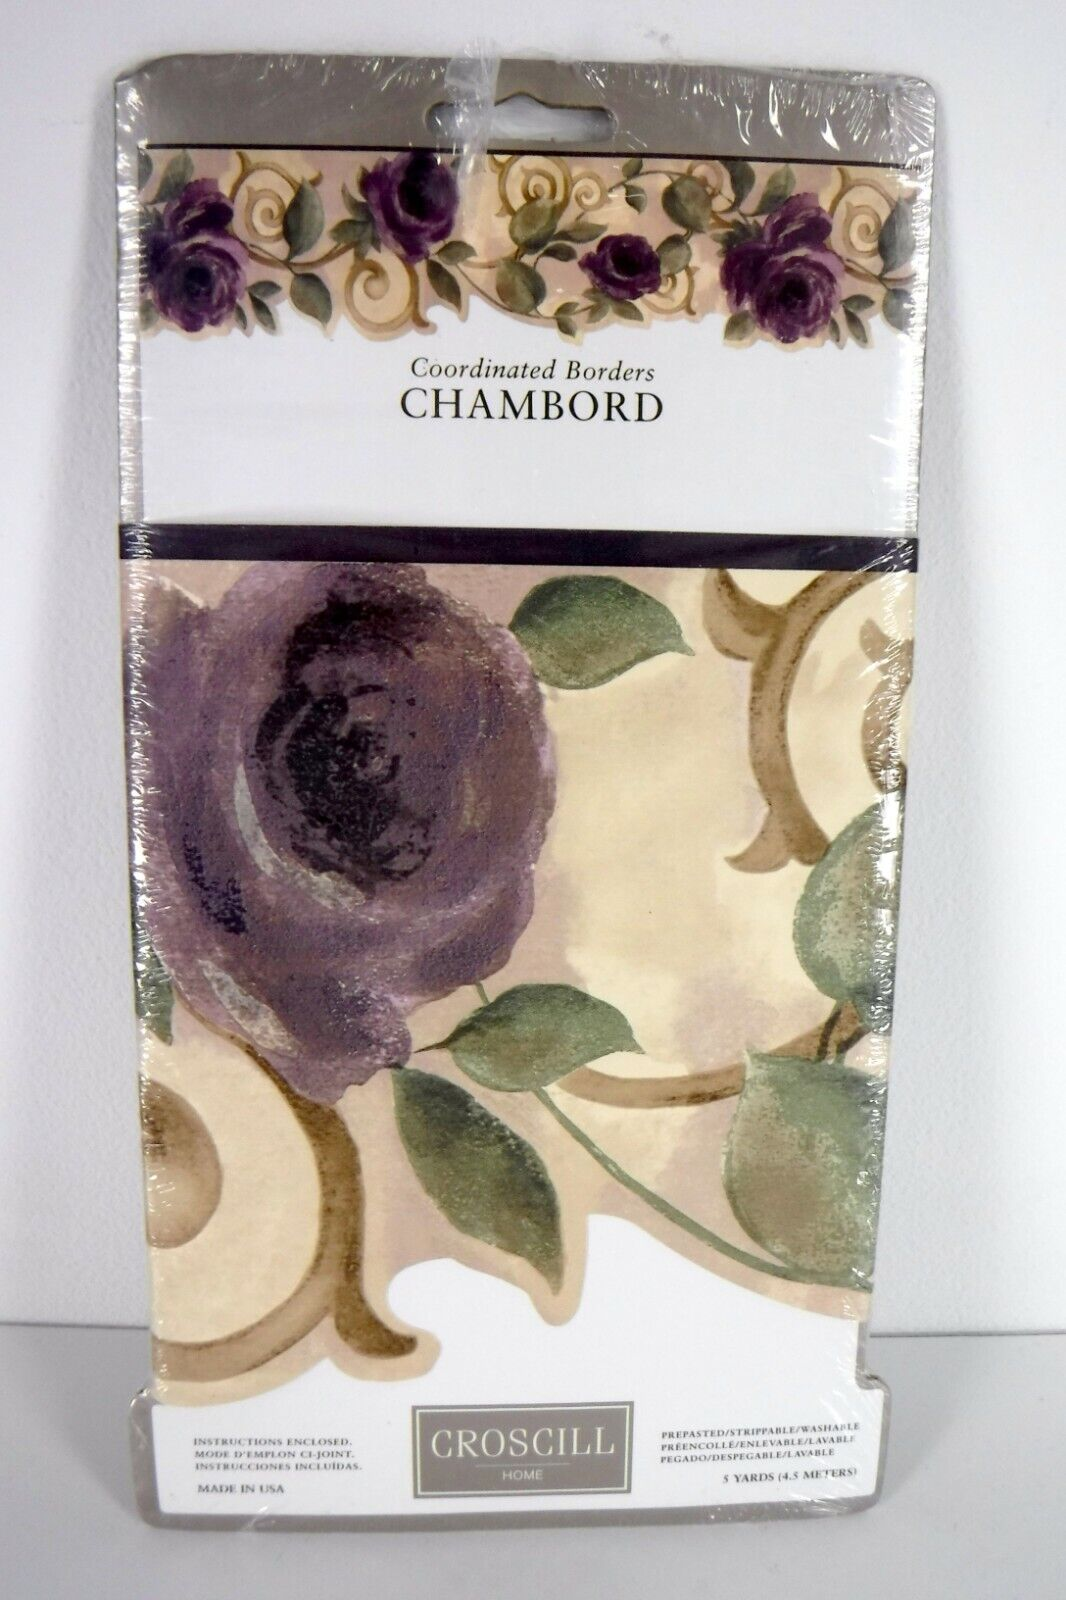 Croscill Wallpaper Border Chambord Amethyst Purple Rose Floral